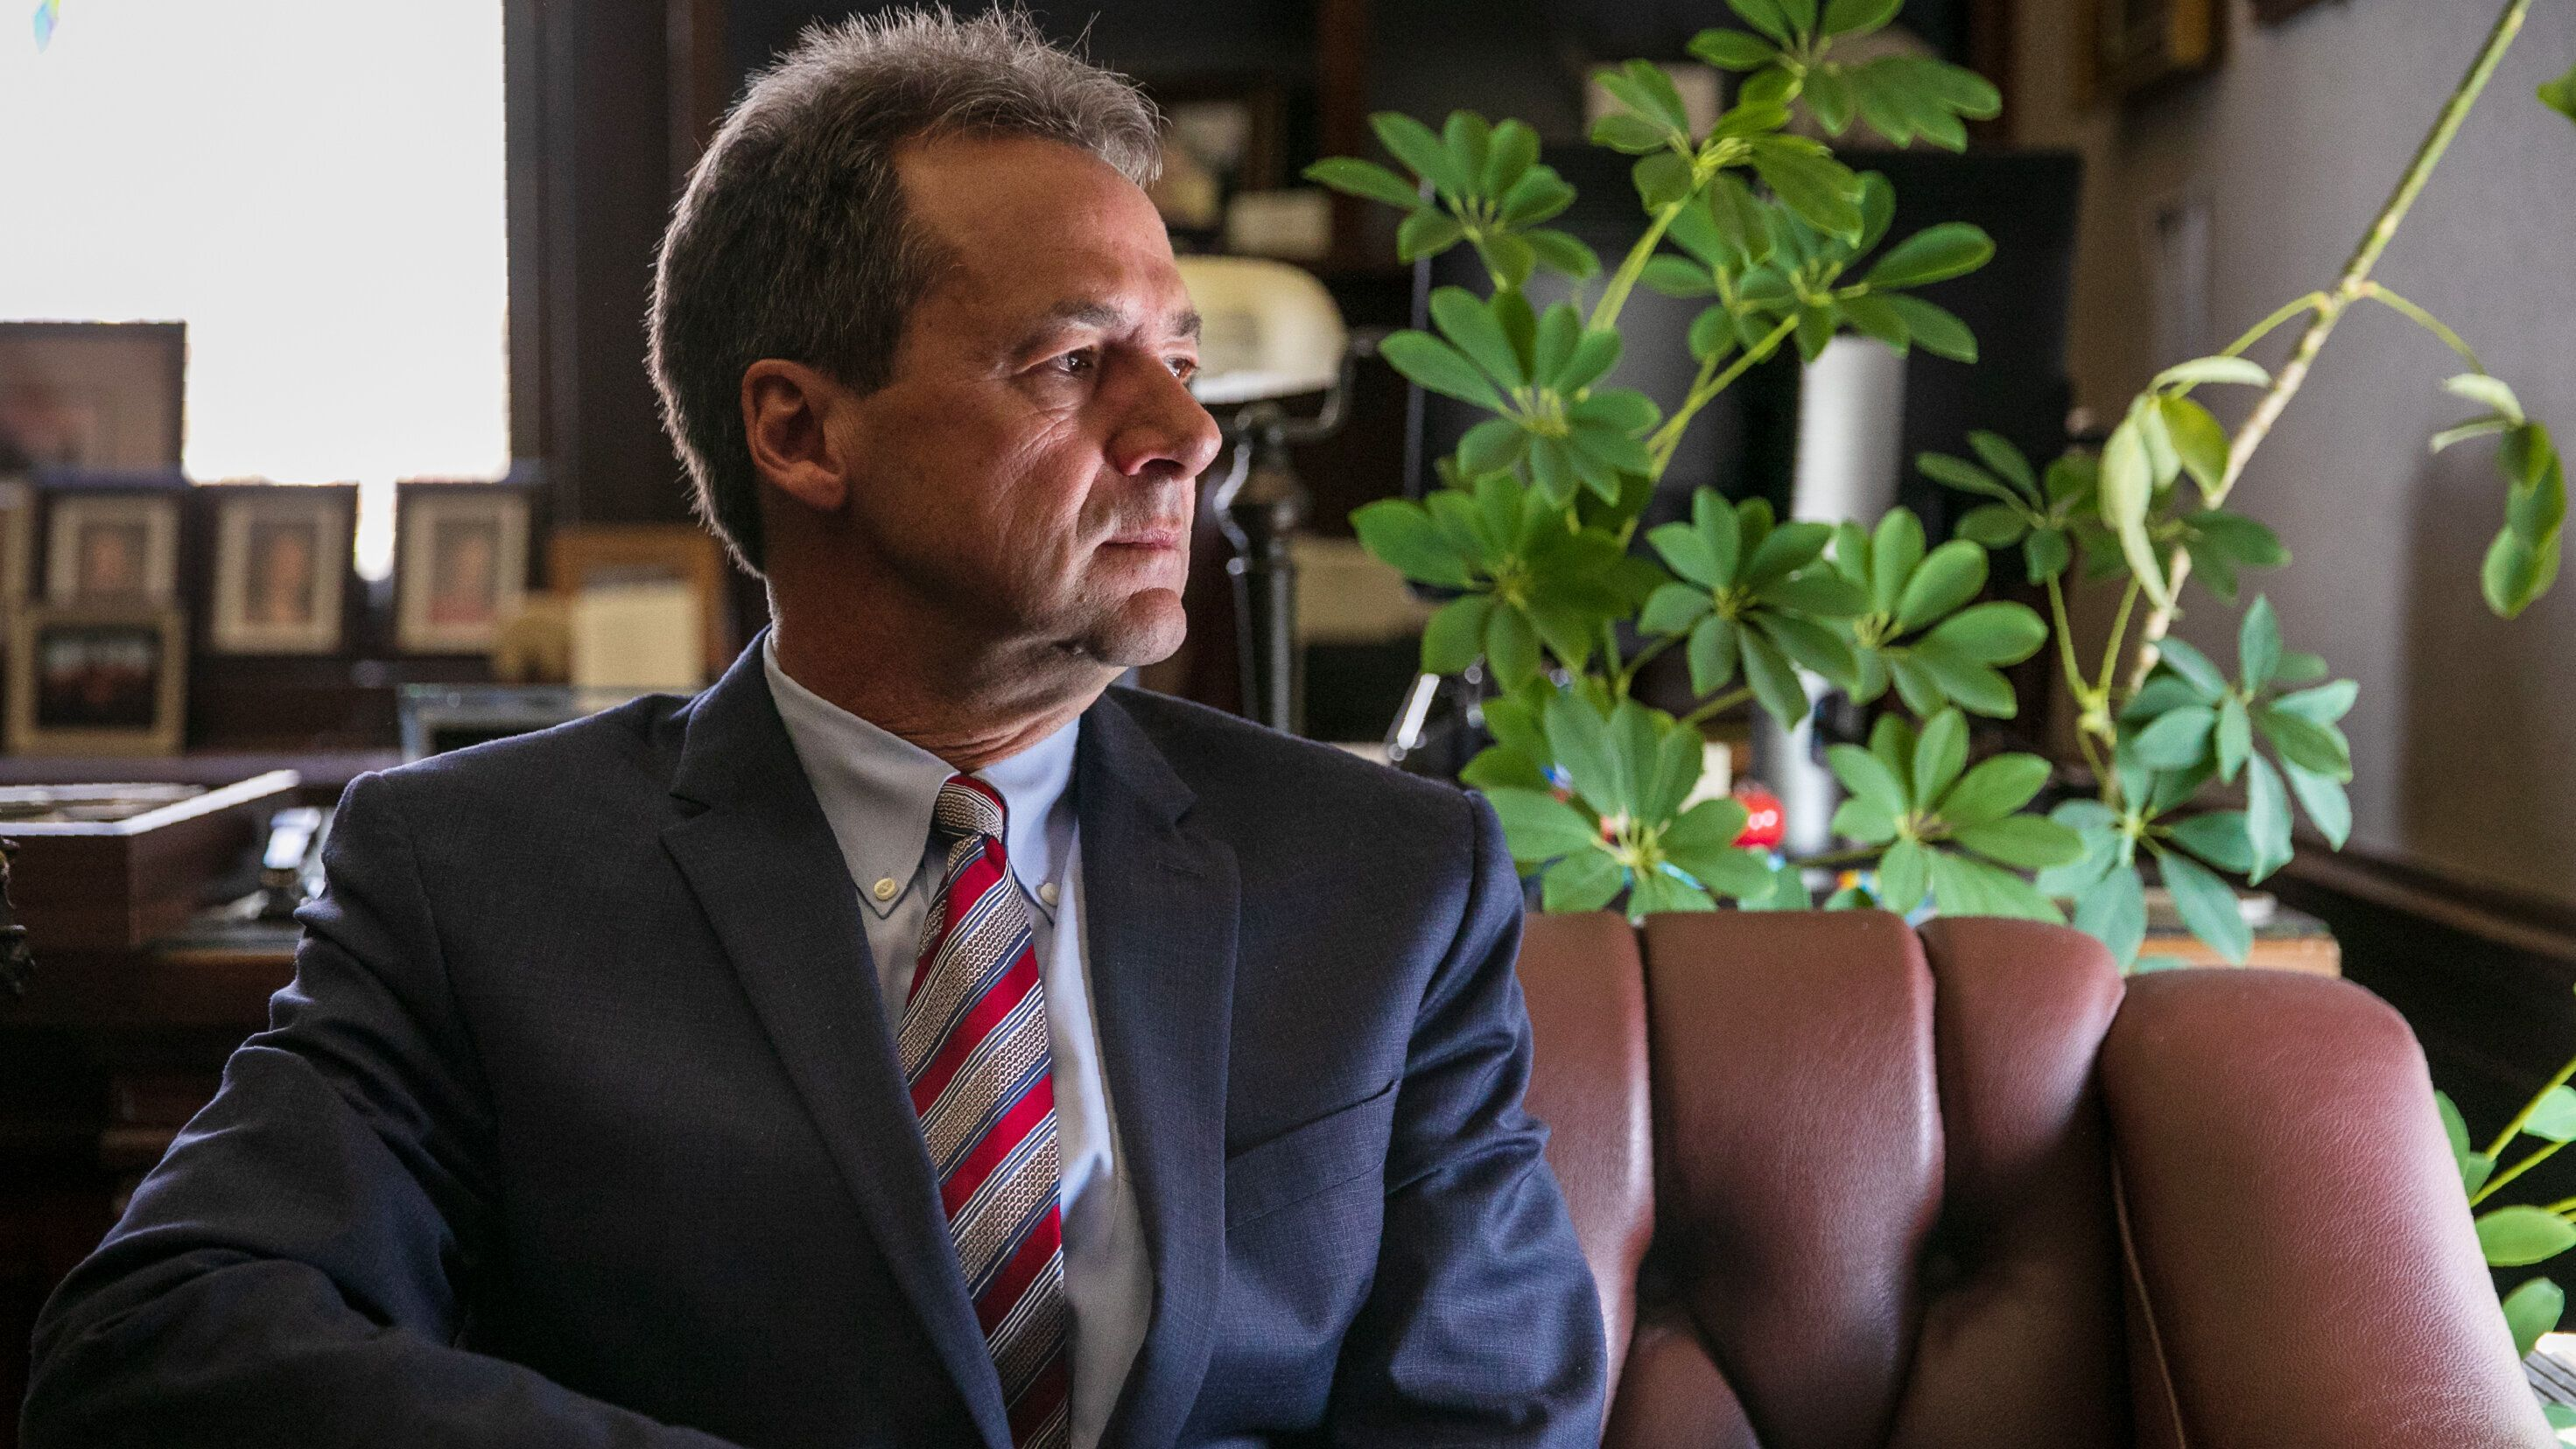 HELENA, MONTANA - May 9, 2019: Montana Gov. Steve Bullock poses for a portrait in his office at the Montana state Capitol. Ilana Panich-Linsman for HuffPost